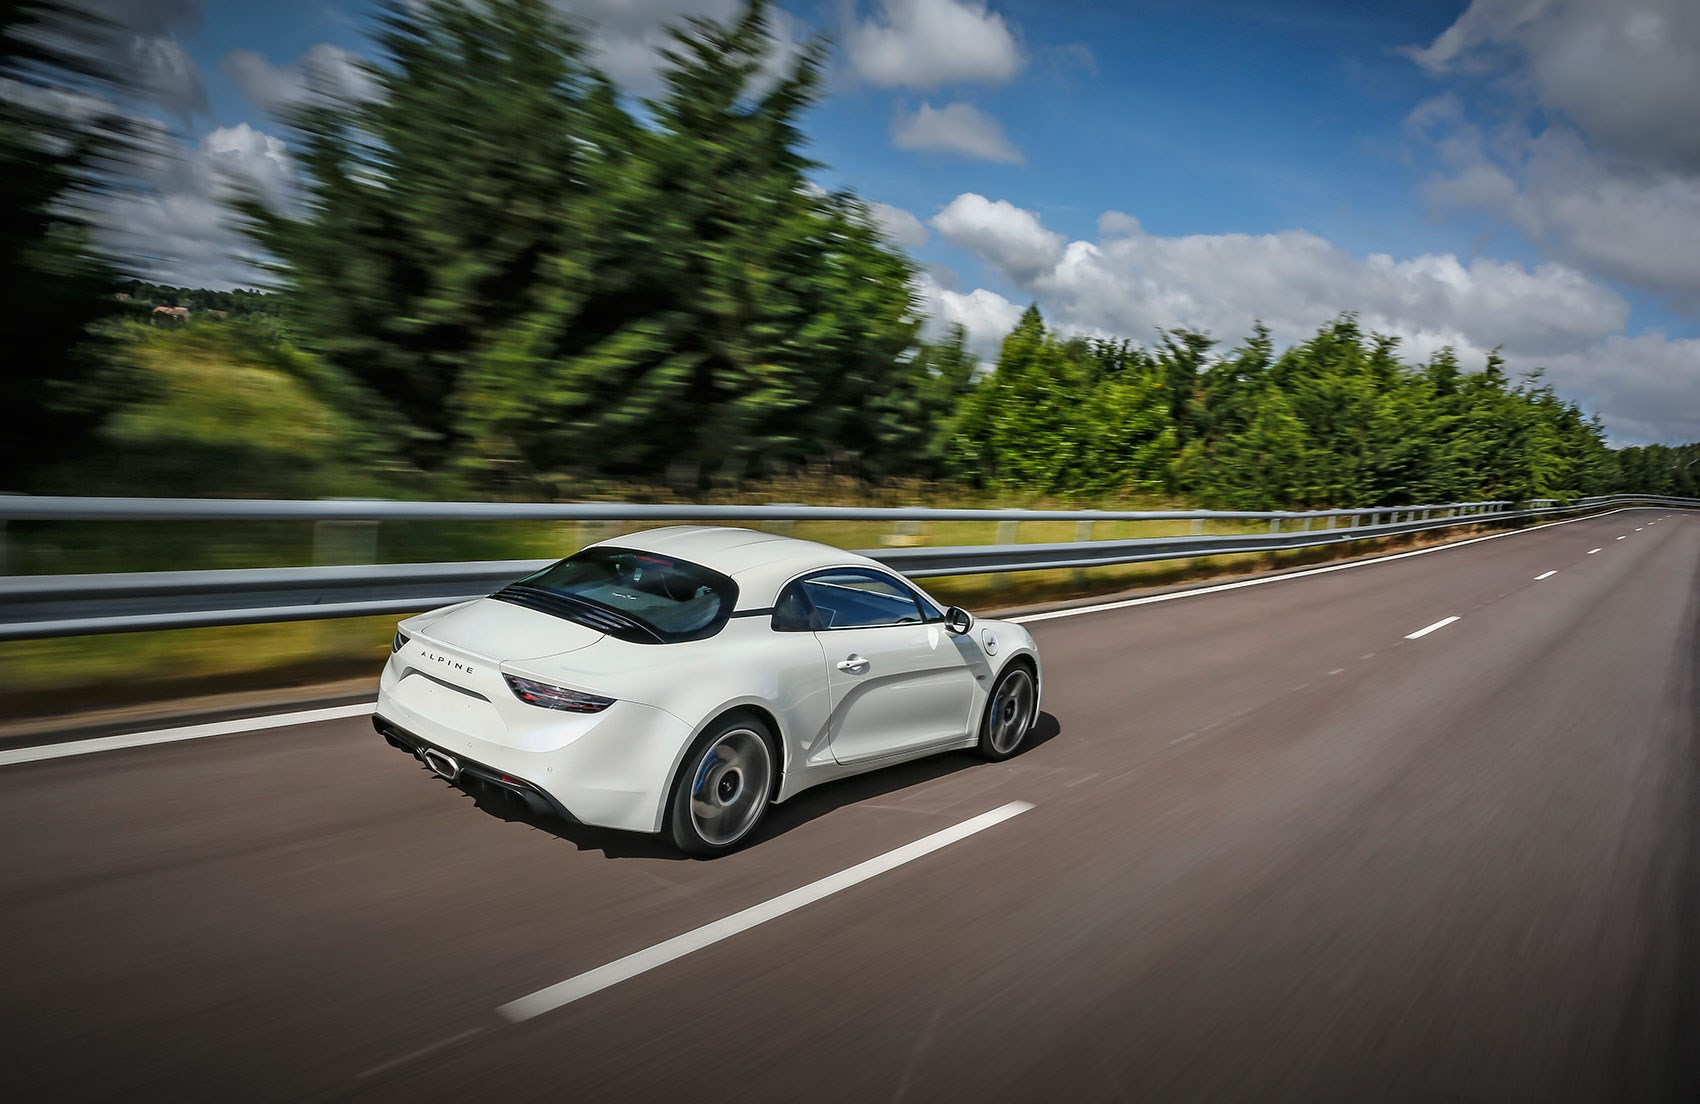 Alpine A110 review: we ride as a passenger in new mid-engined Alpine